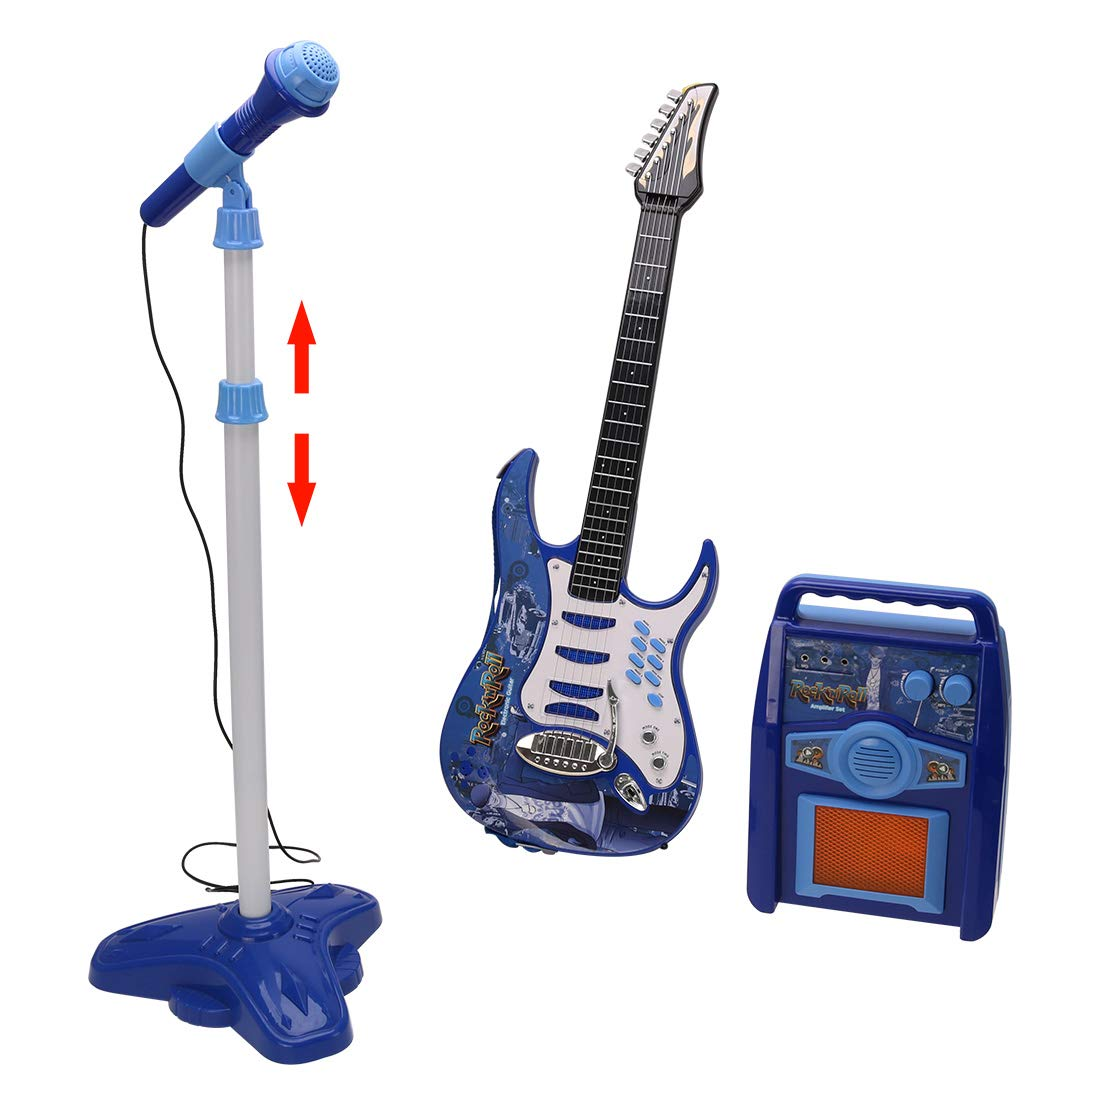 PeleusTech® Children's Karaoke Set, Electronic Guitar + Loudspeaker Box + Microphone Stand Gift for Kids